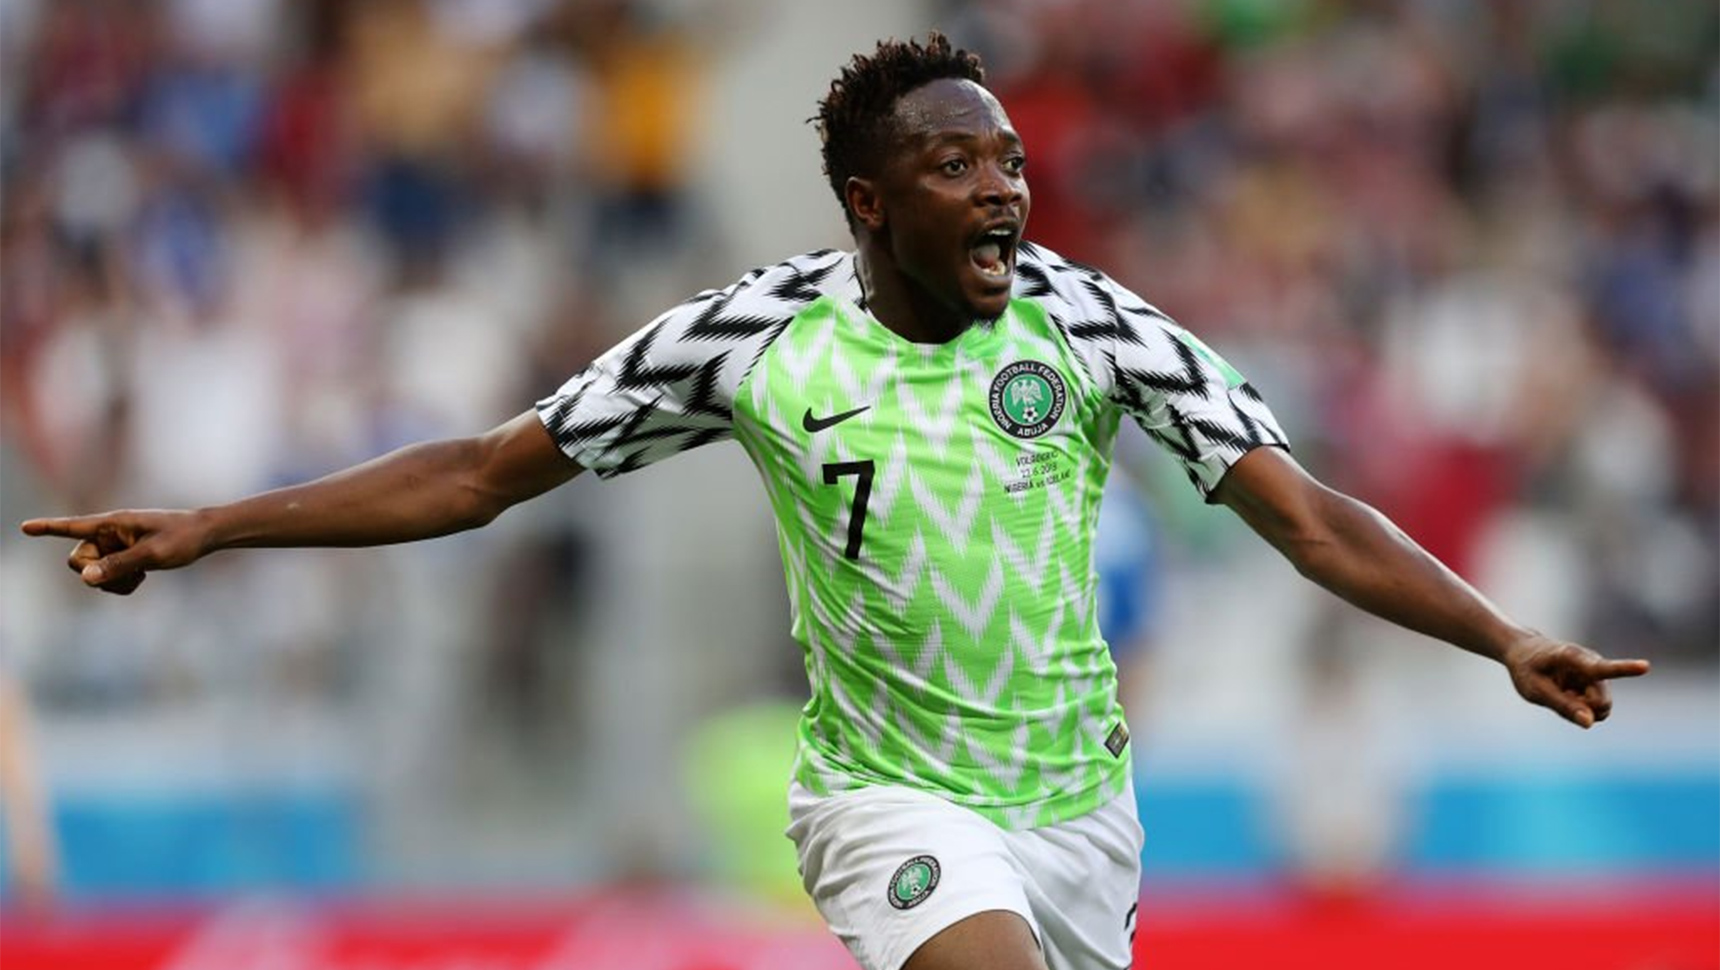 Ahmed Musa completed a transfer from Leicester City to Saudi Arabia club.